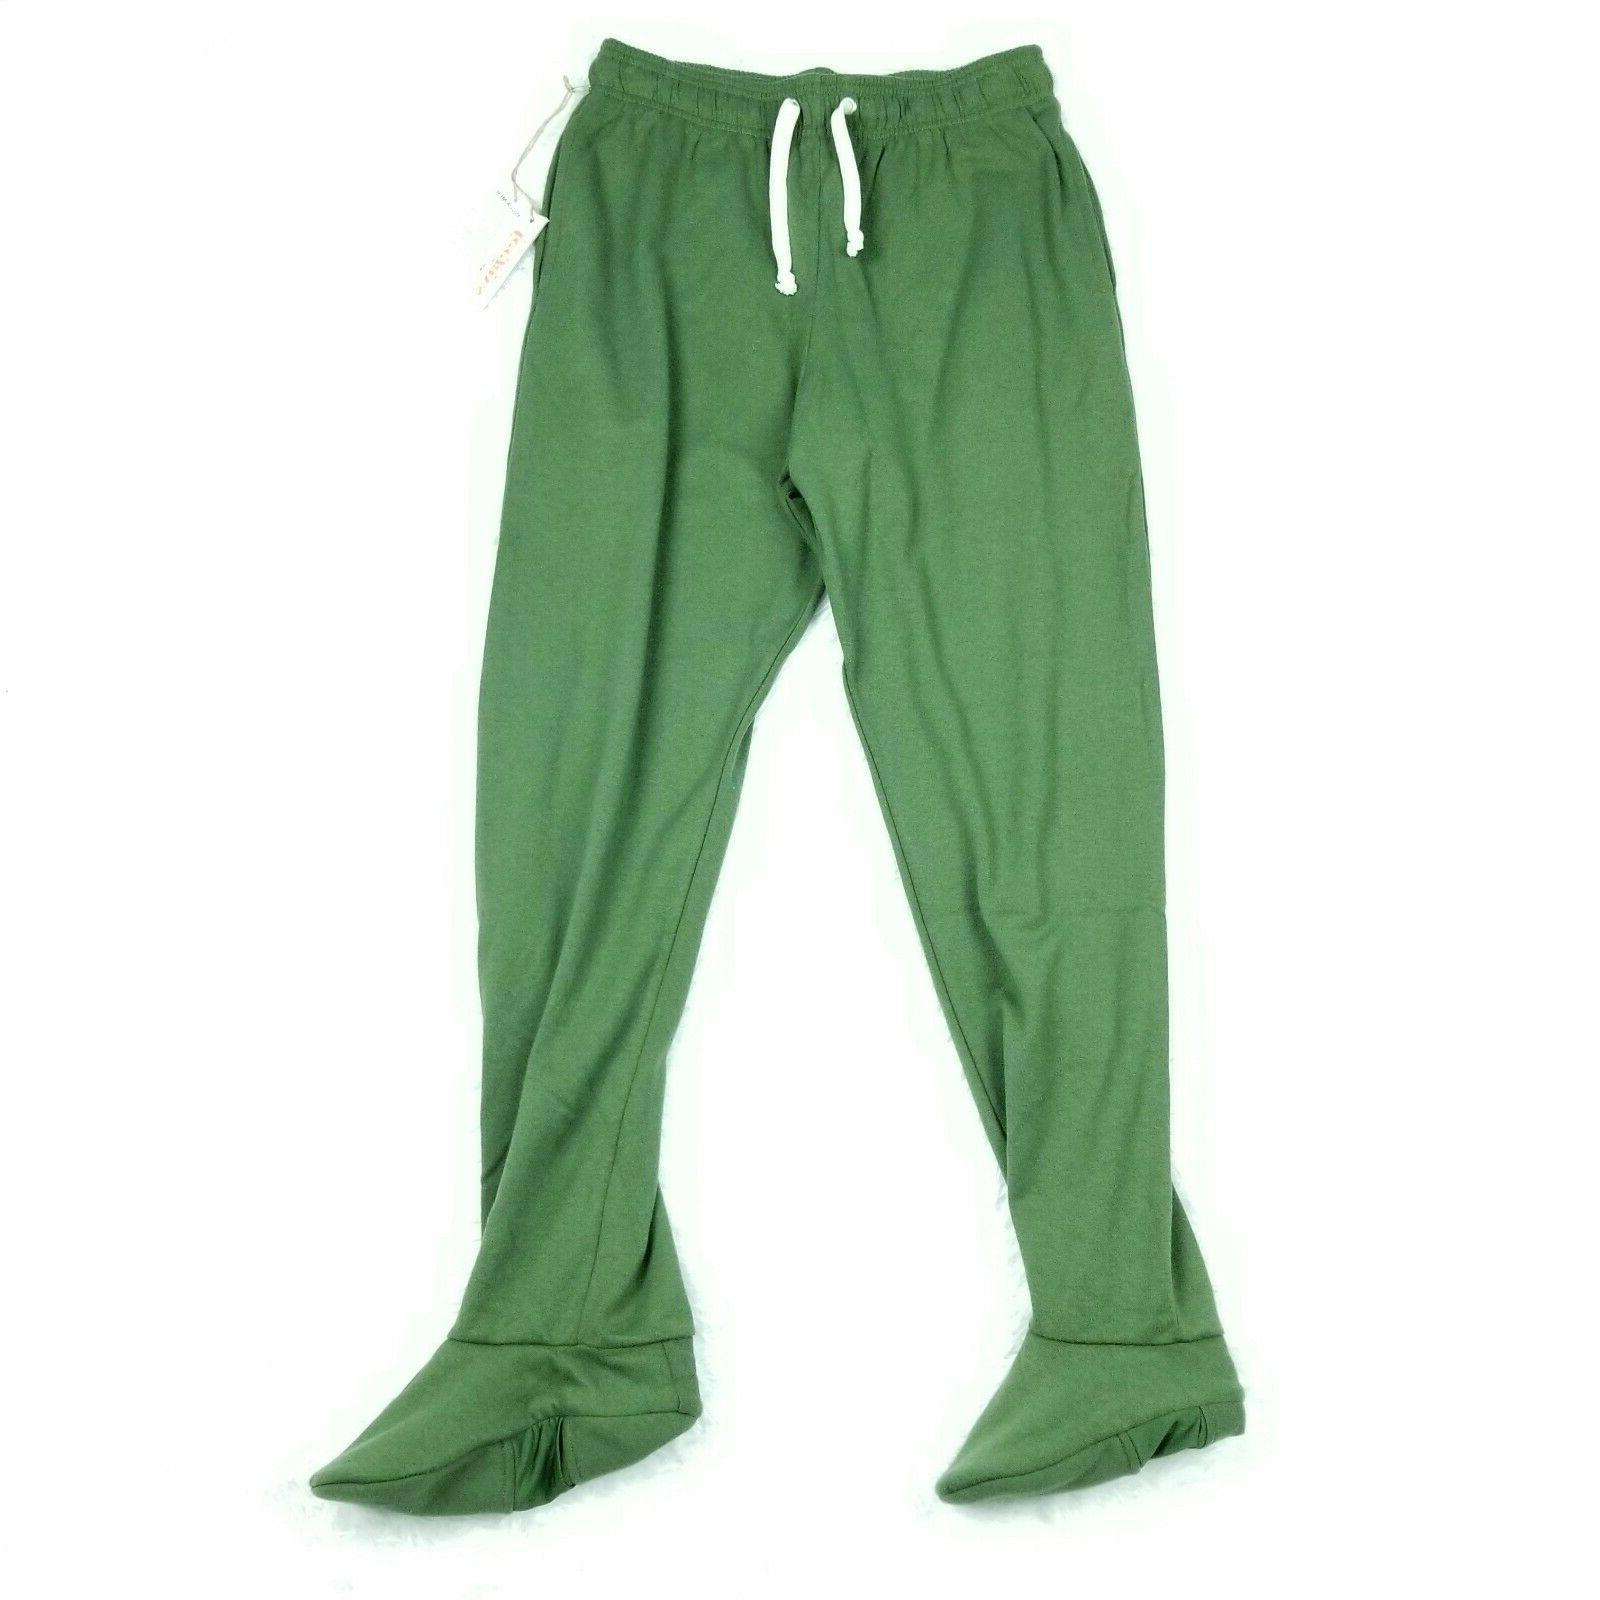 nwt footed drawstring sweatpants adult medium m